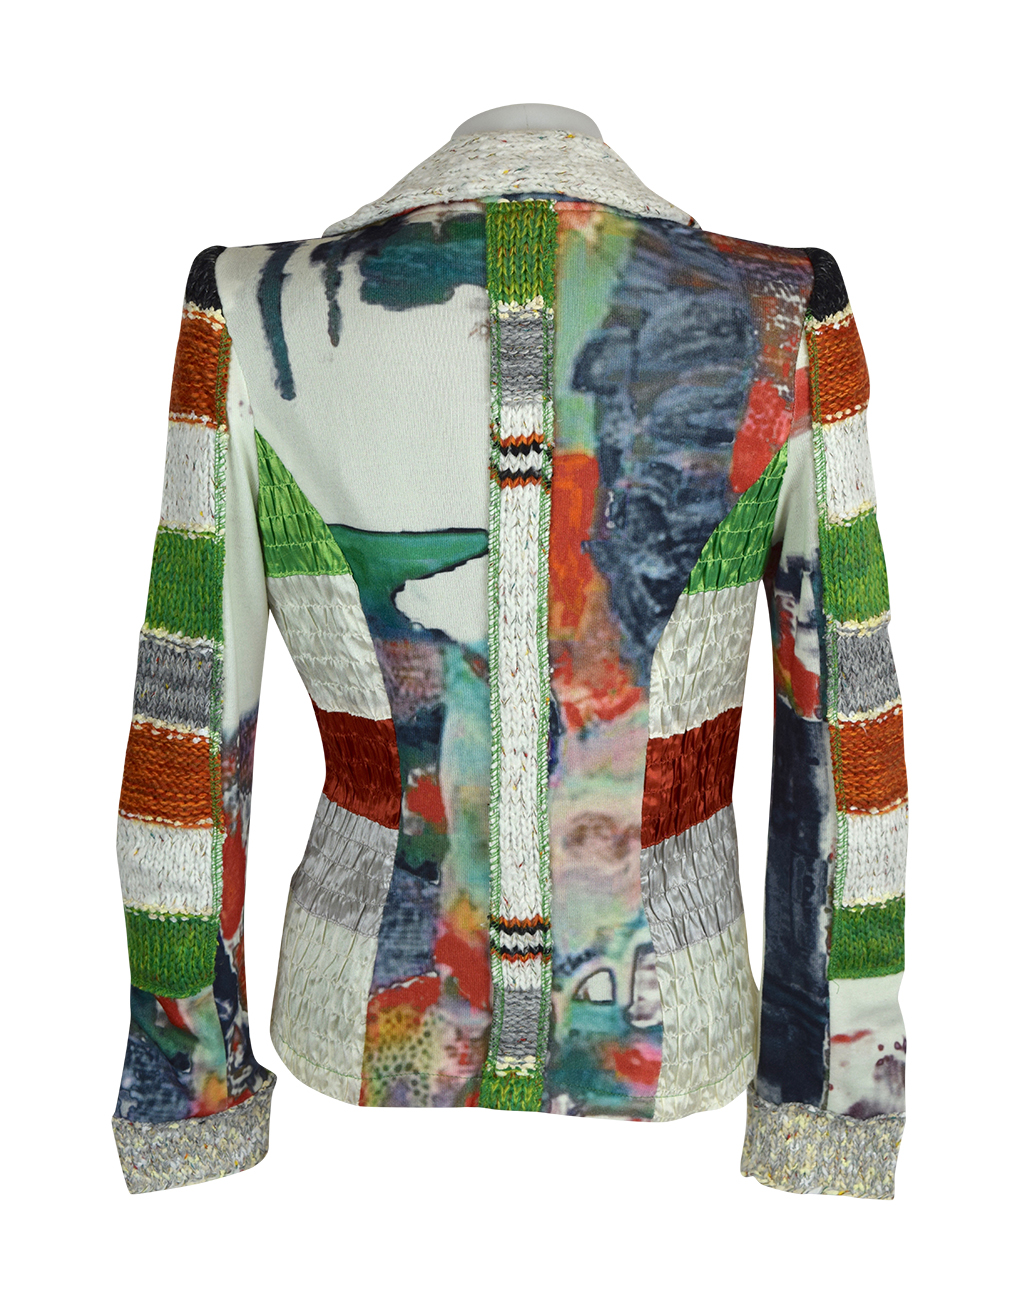 Lulu H Orange & Green French Style Jacket1